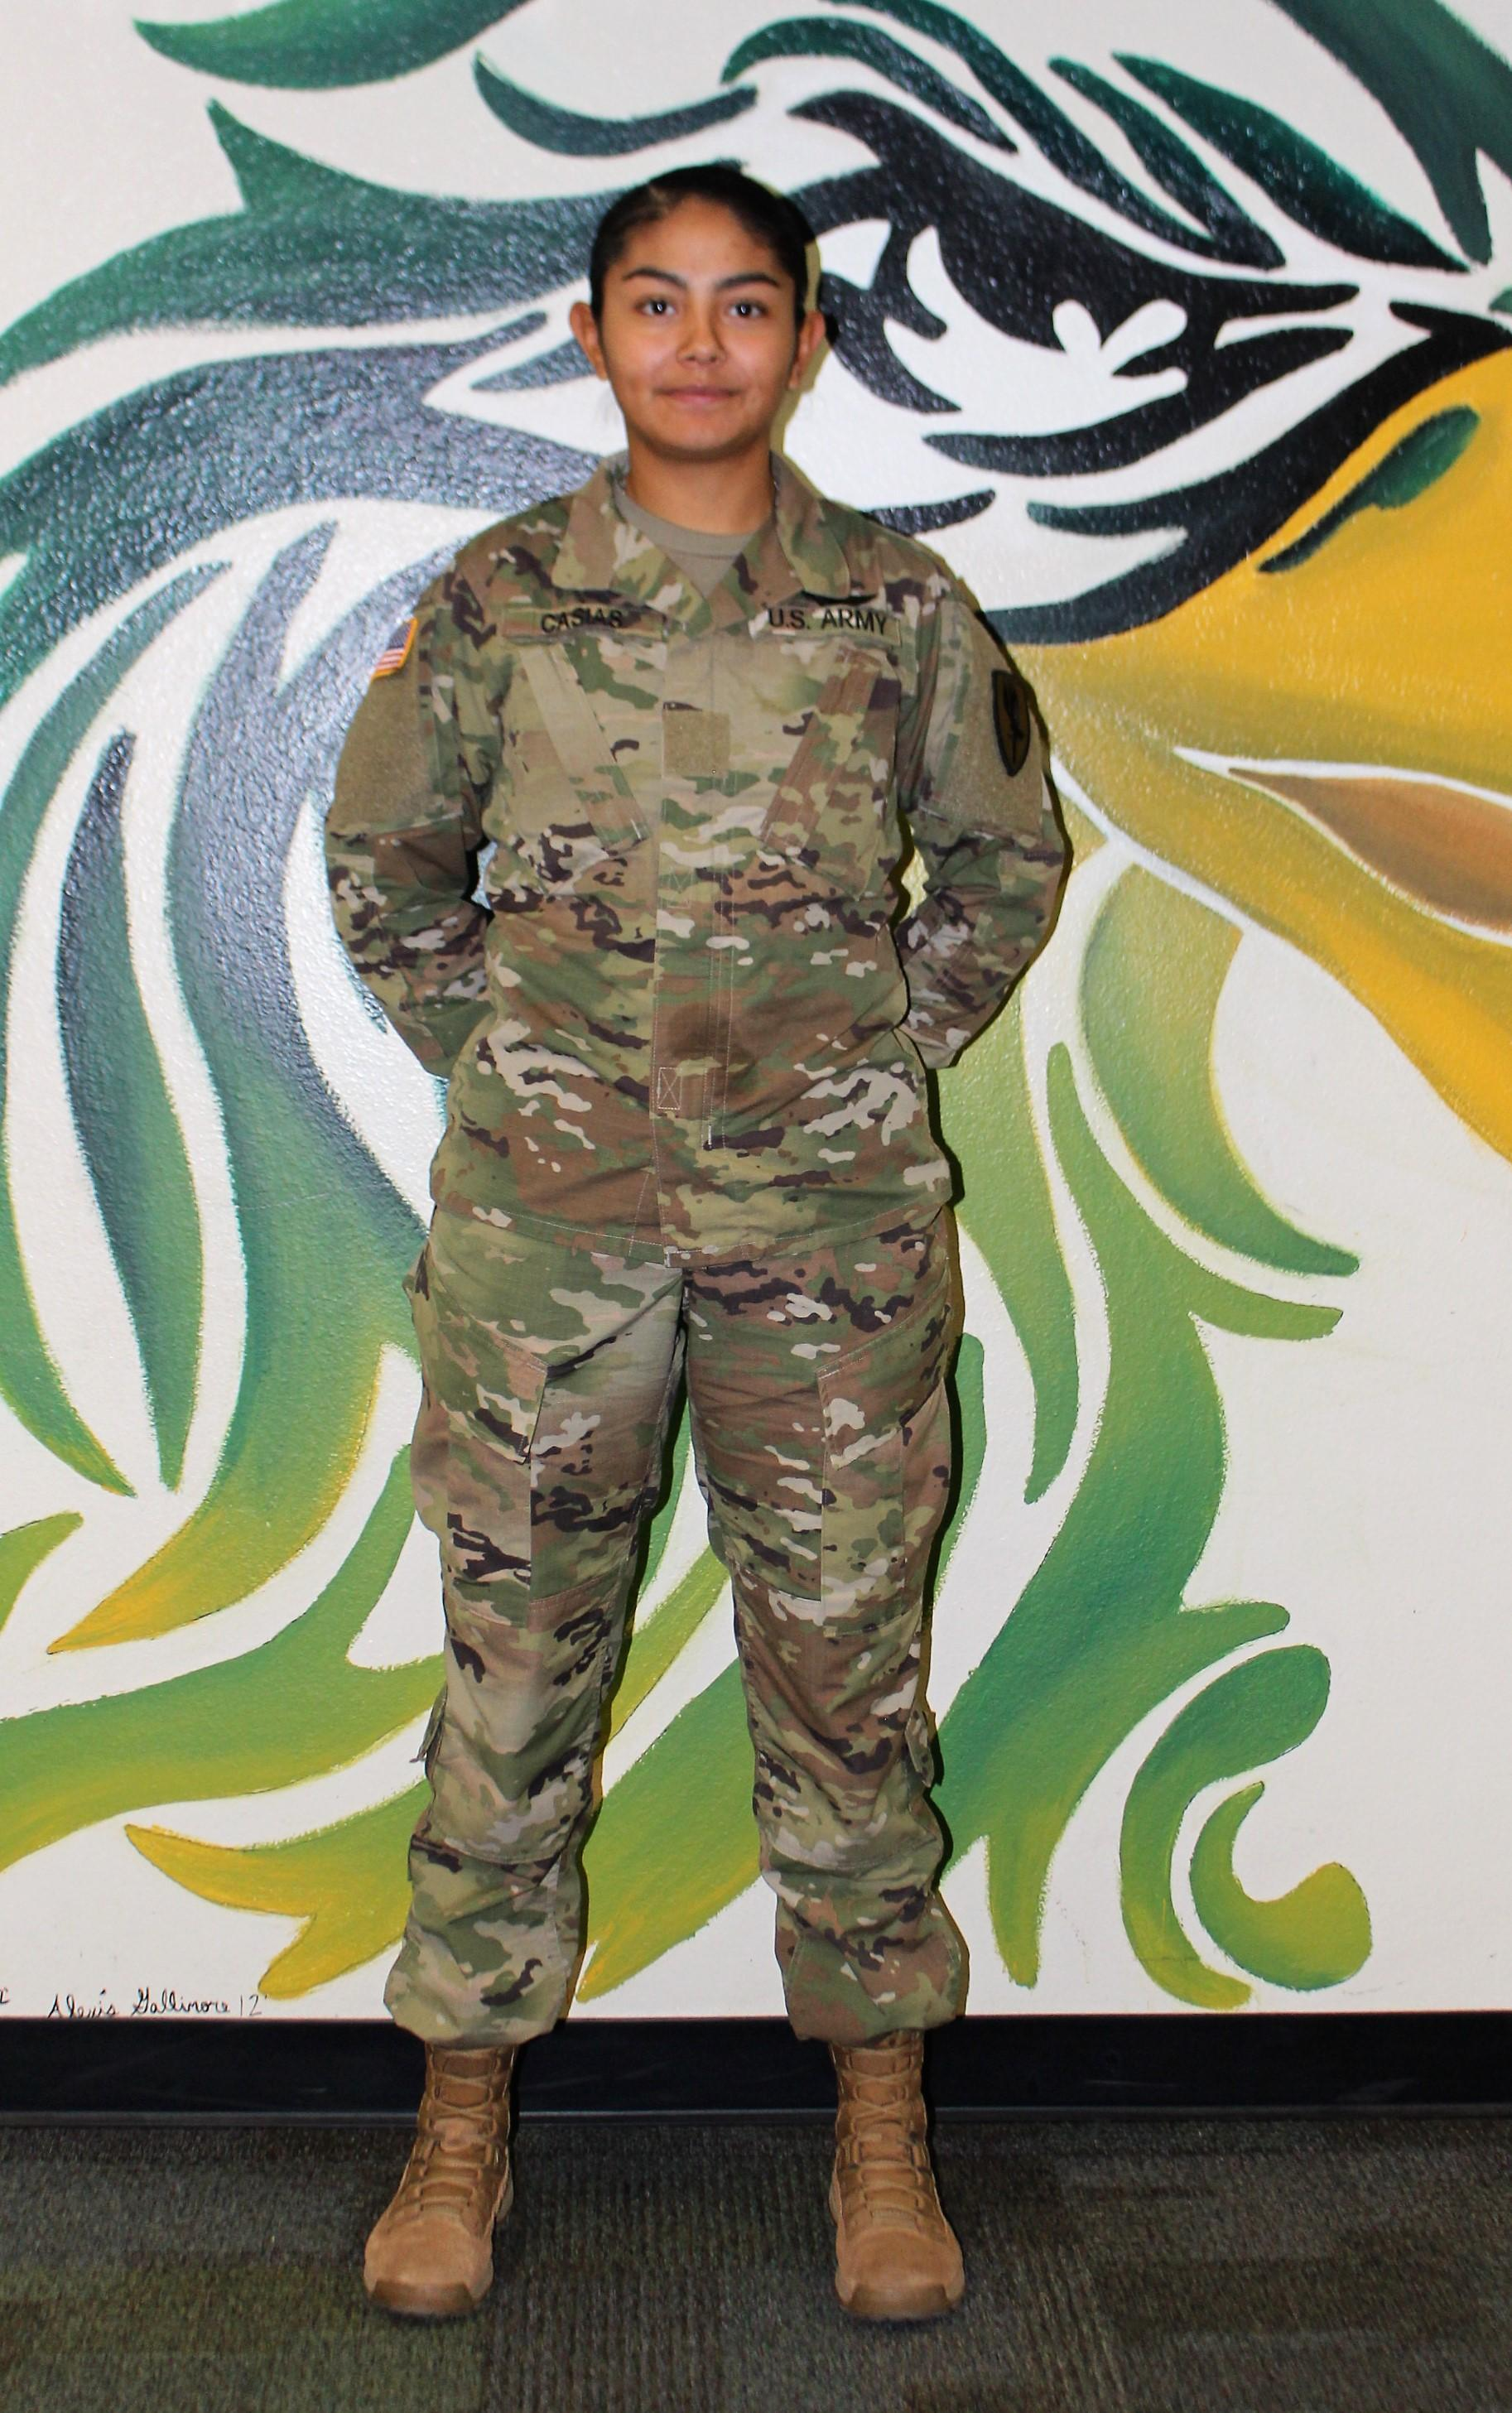 GCHS was pleasantly surprised by an unexpected visit from 2019 graduate Alexis Casias during the 2nd annual Military Week. Alexis enlisted in the United States Army and has trained to become an Aviation Specialist. Her next duty station will be in Korea for the next year. We congratulate her and wish her the best.